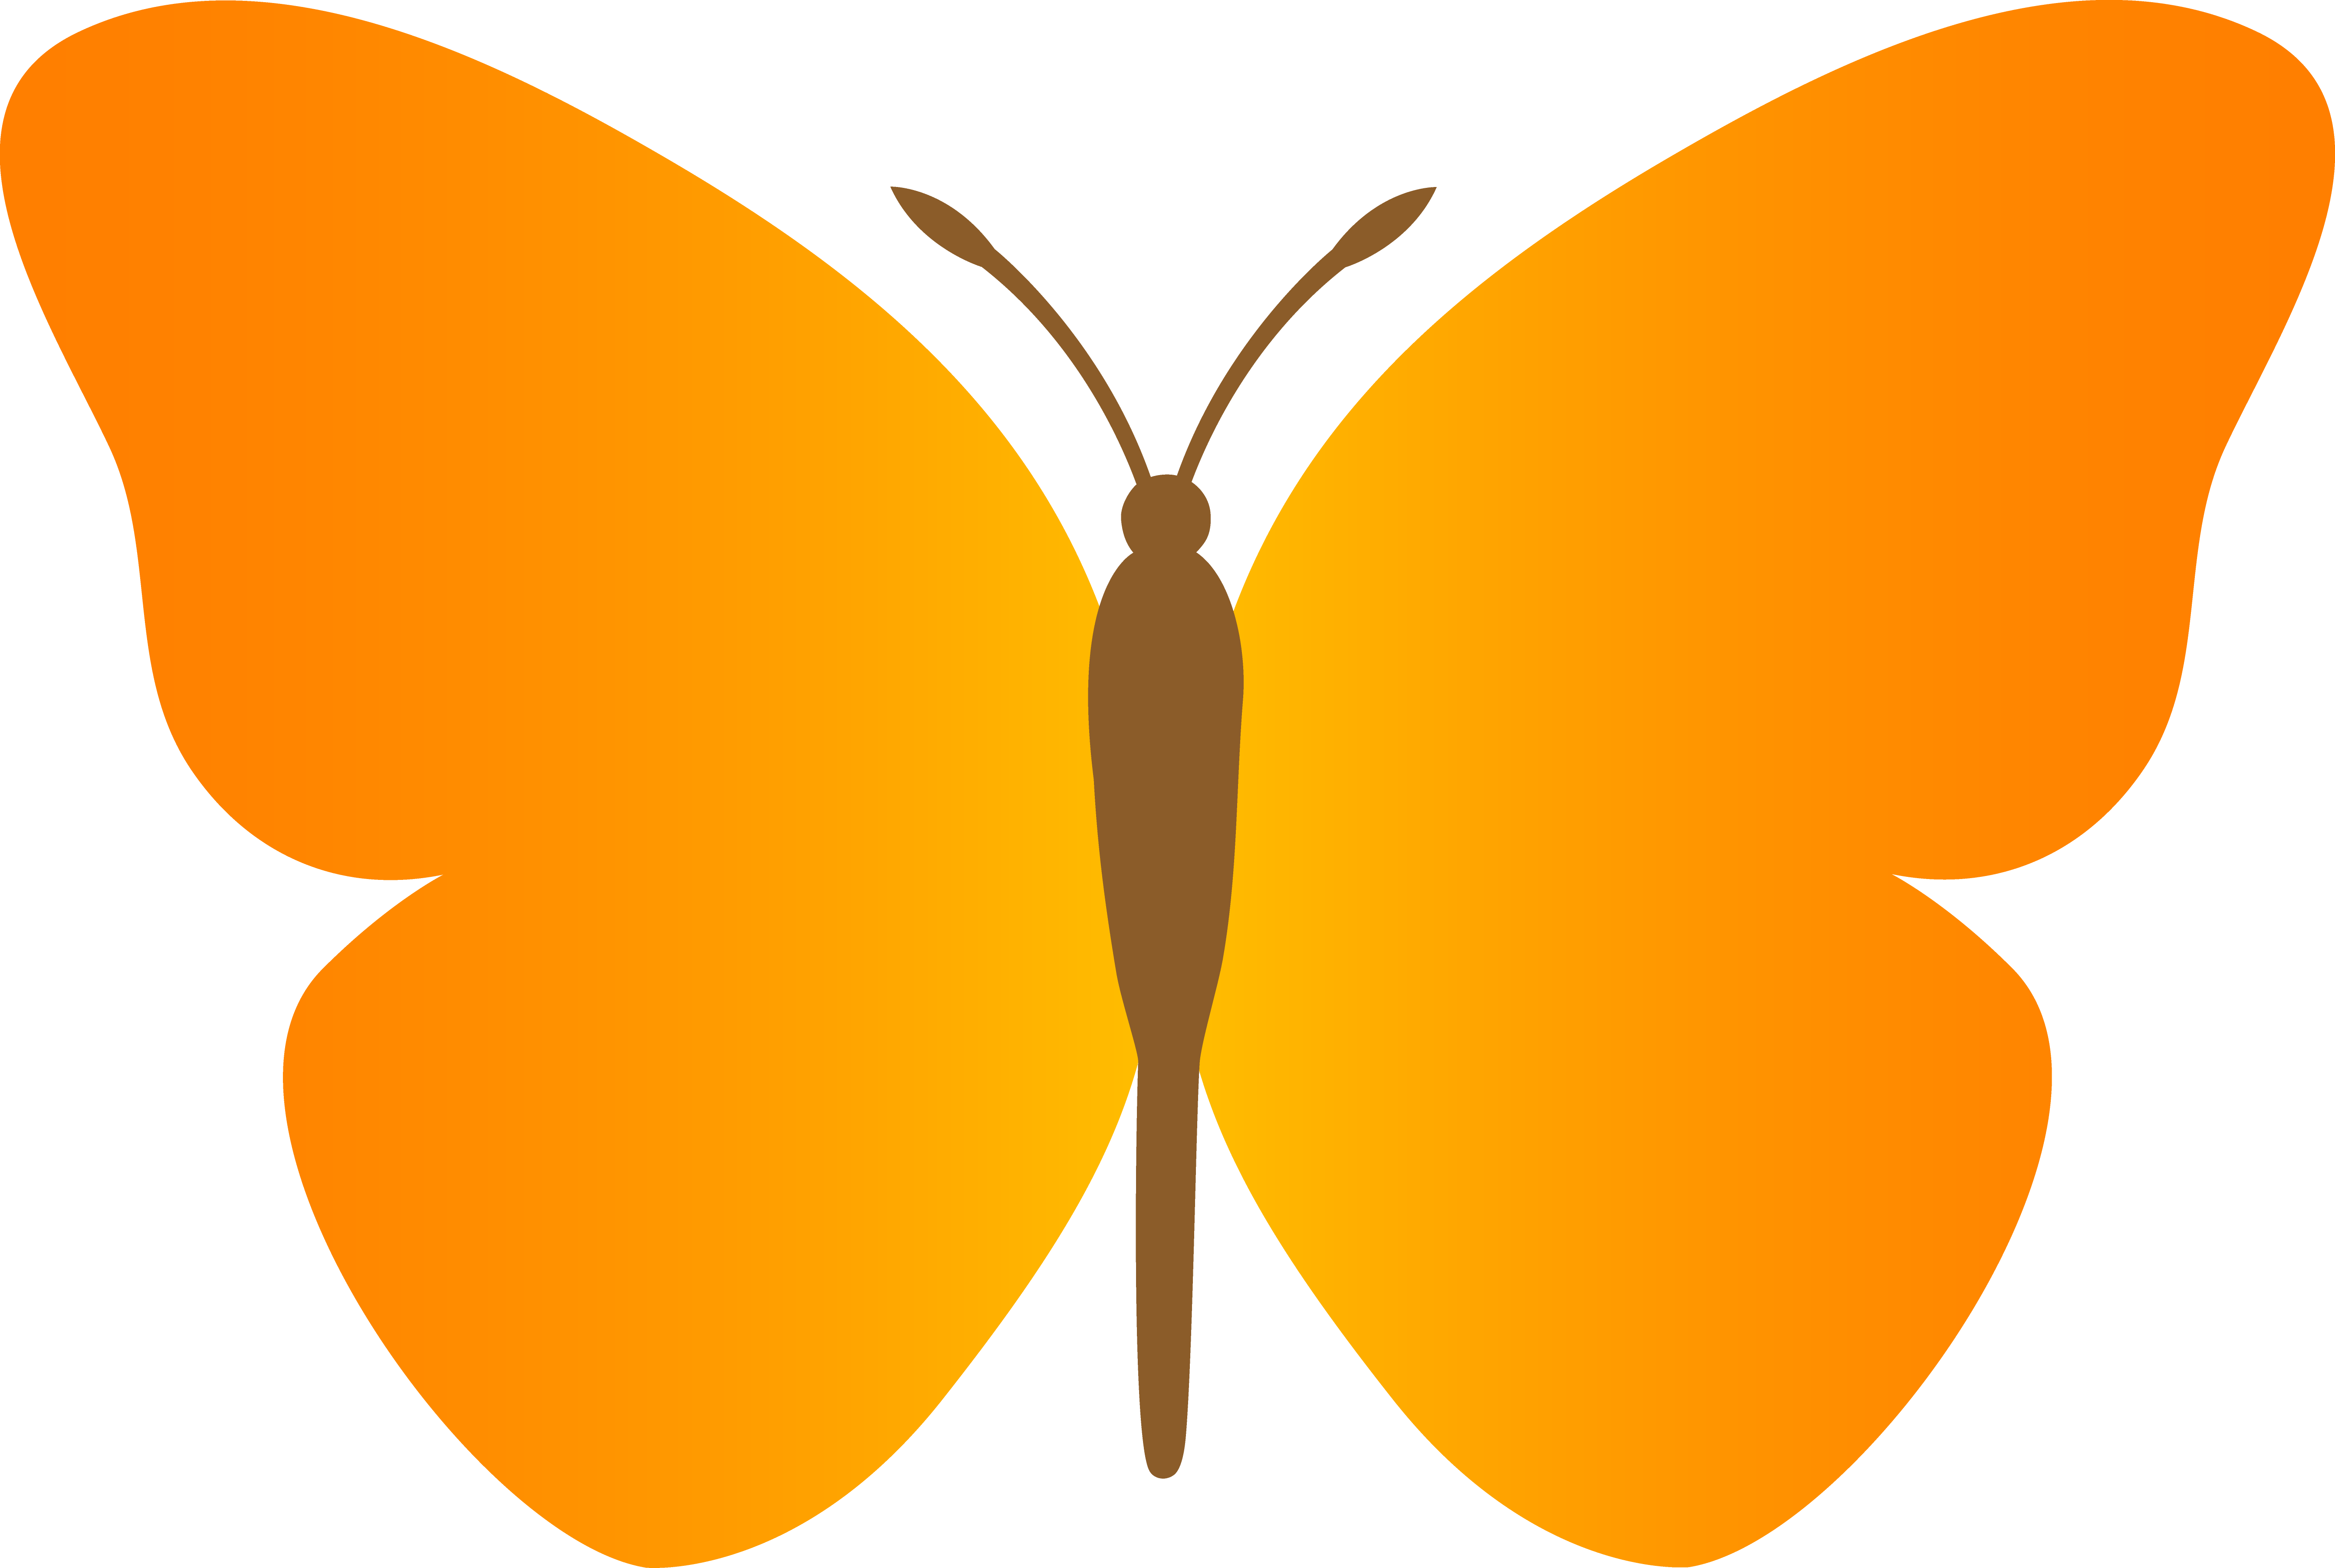 Blue butterfly cliparthot of. Wing clipart plain